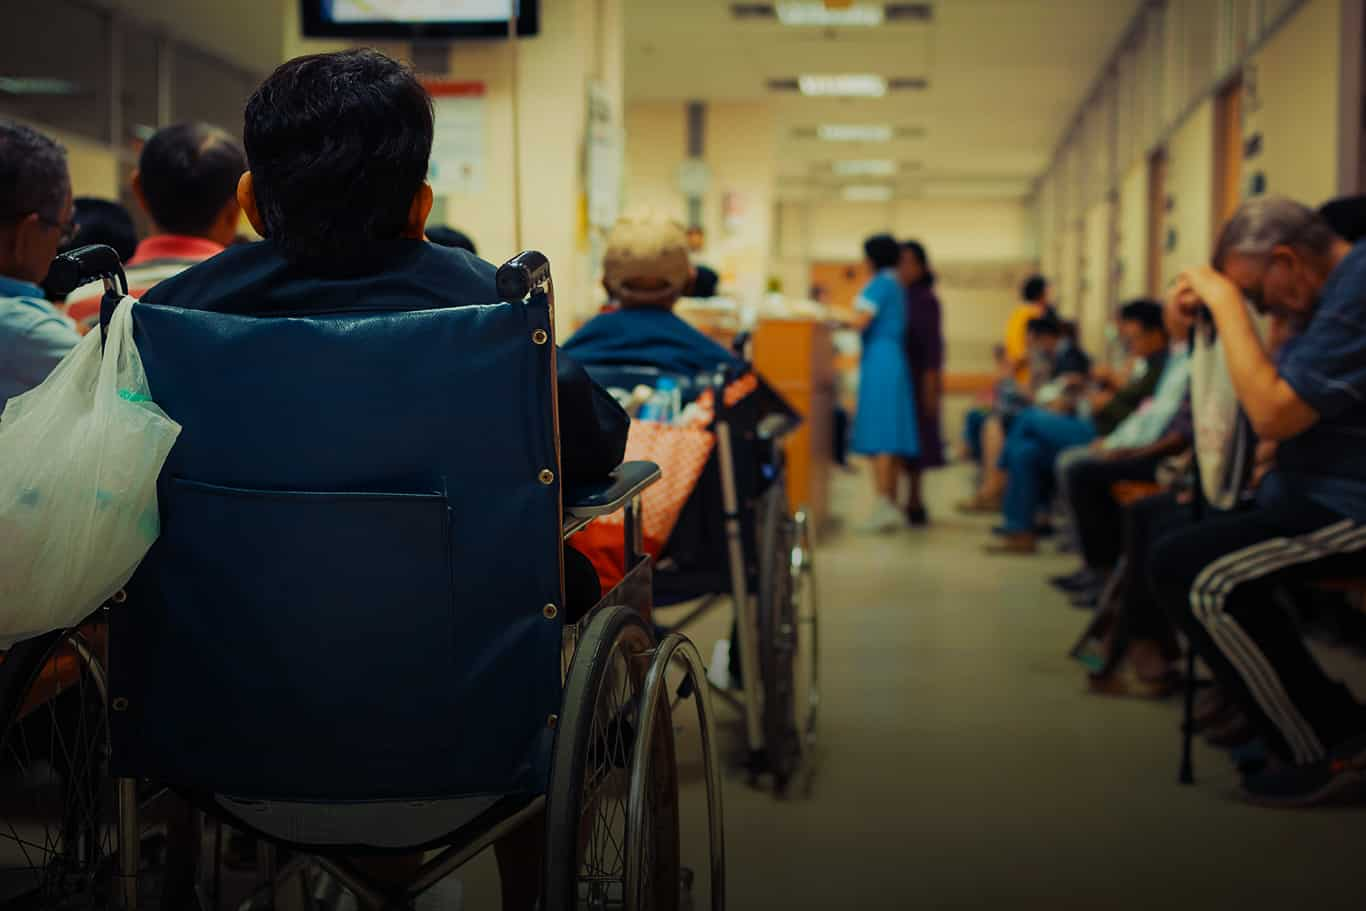 Image result for problems with the nhs 2016 waiting room pics